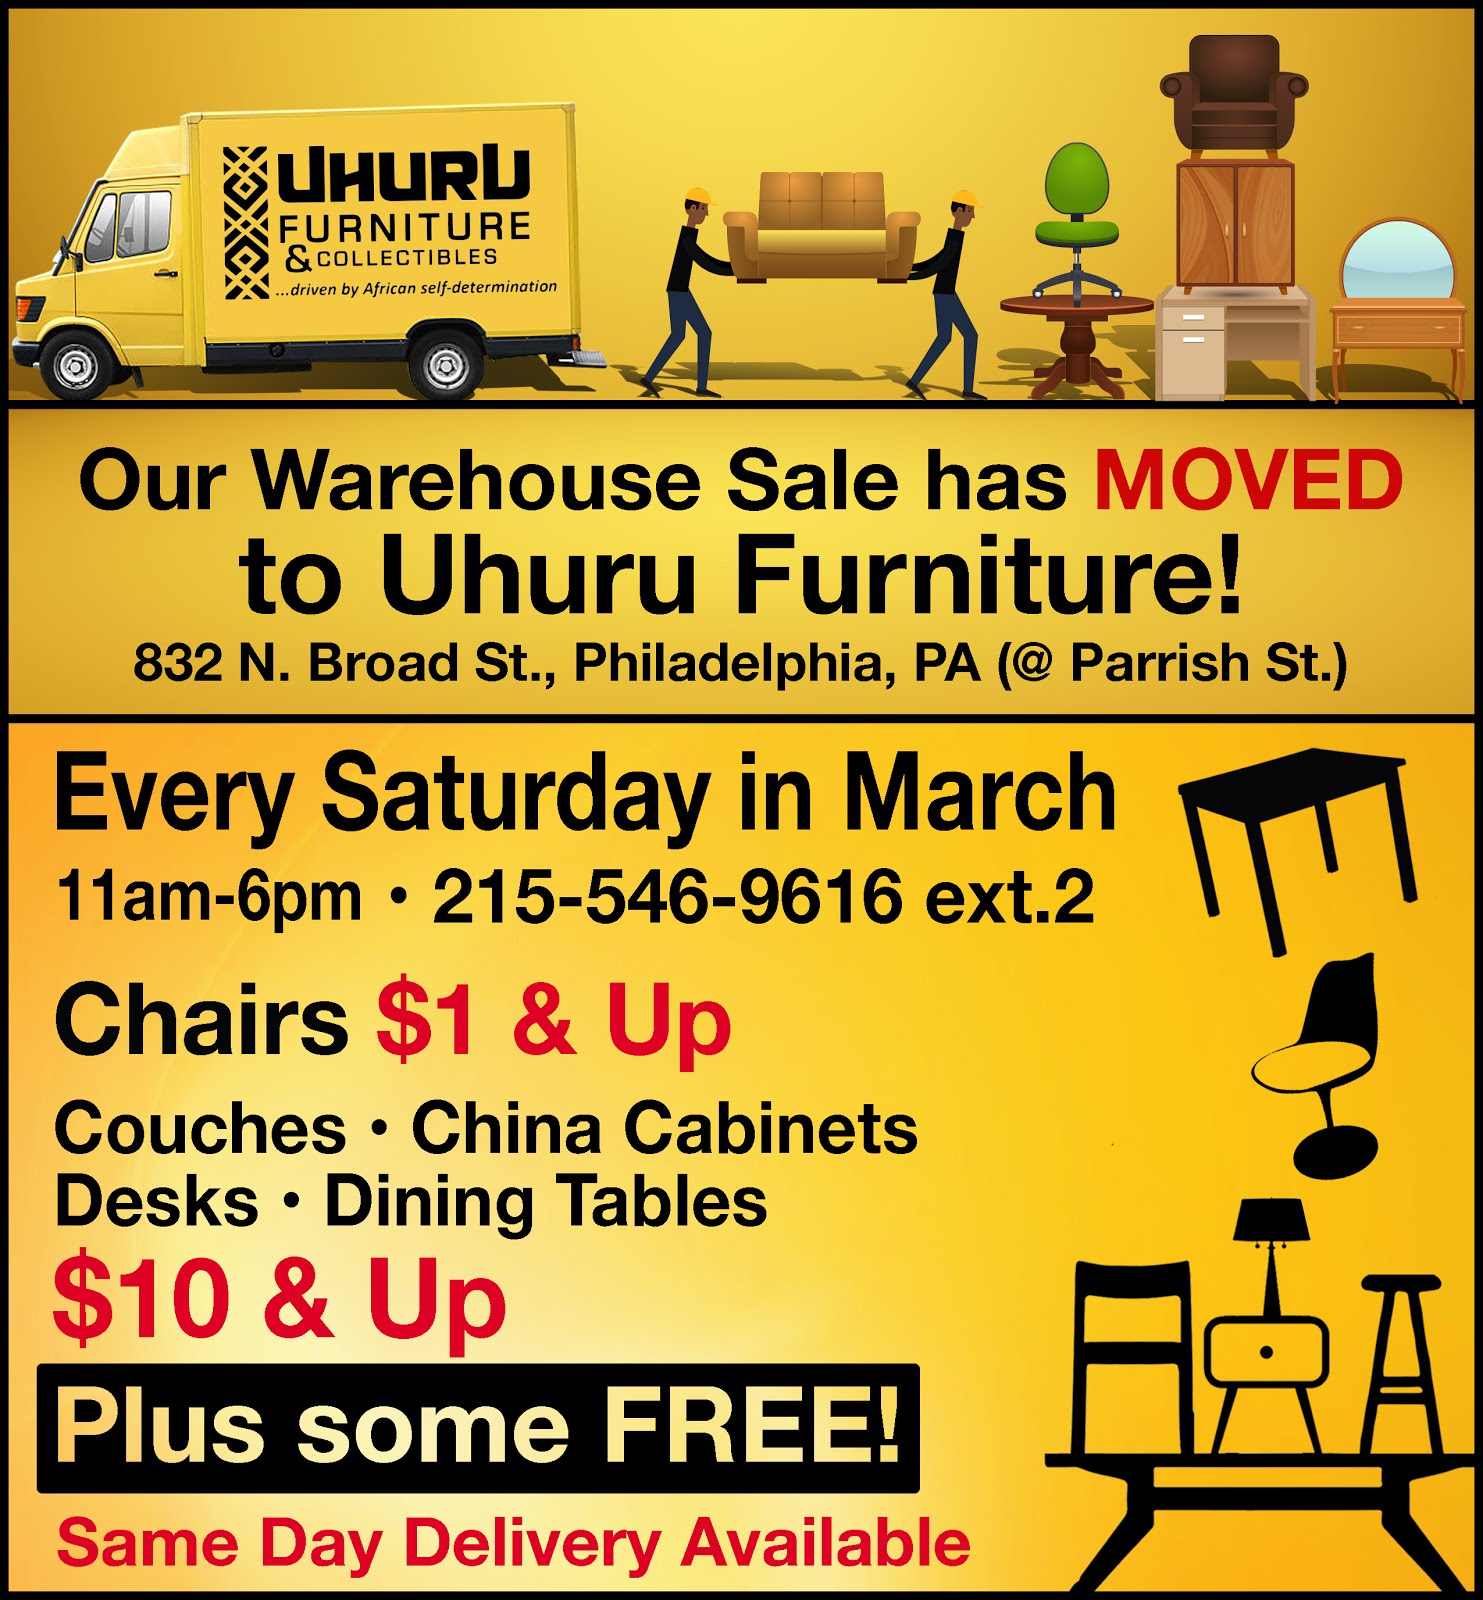 OUR WAREHOUSE SALE HAS MOVED!